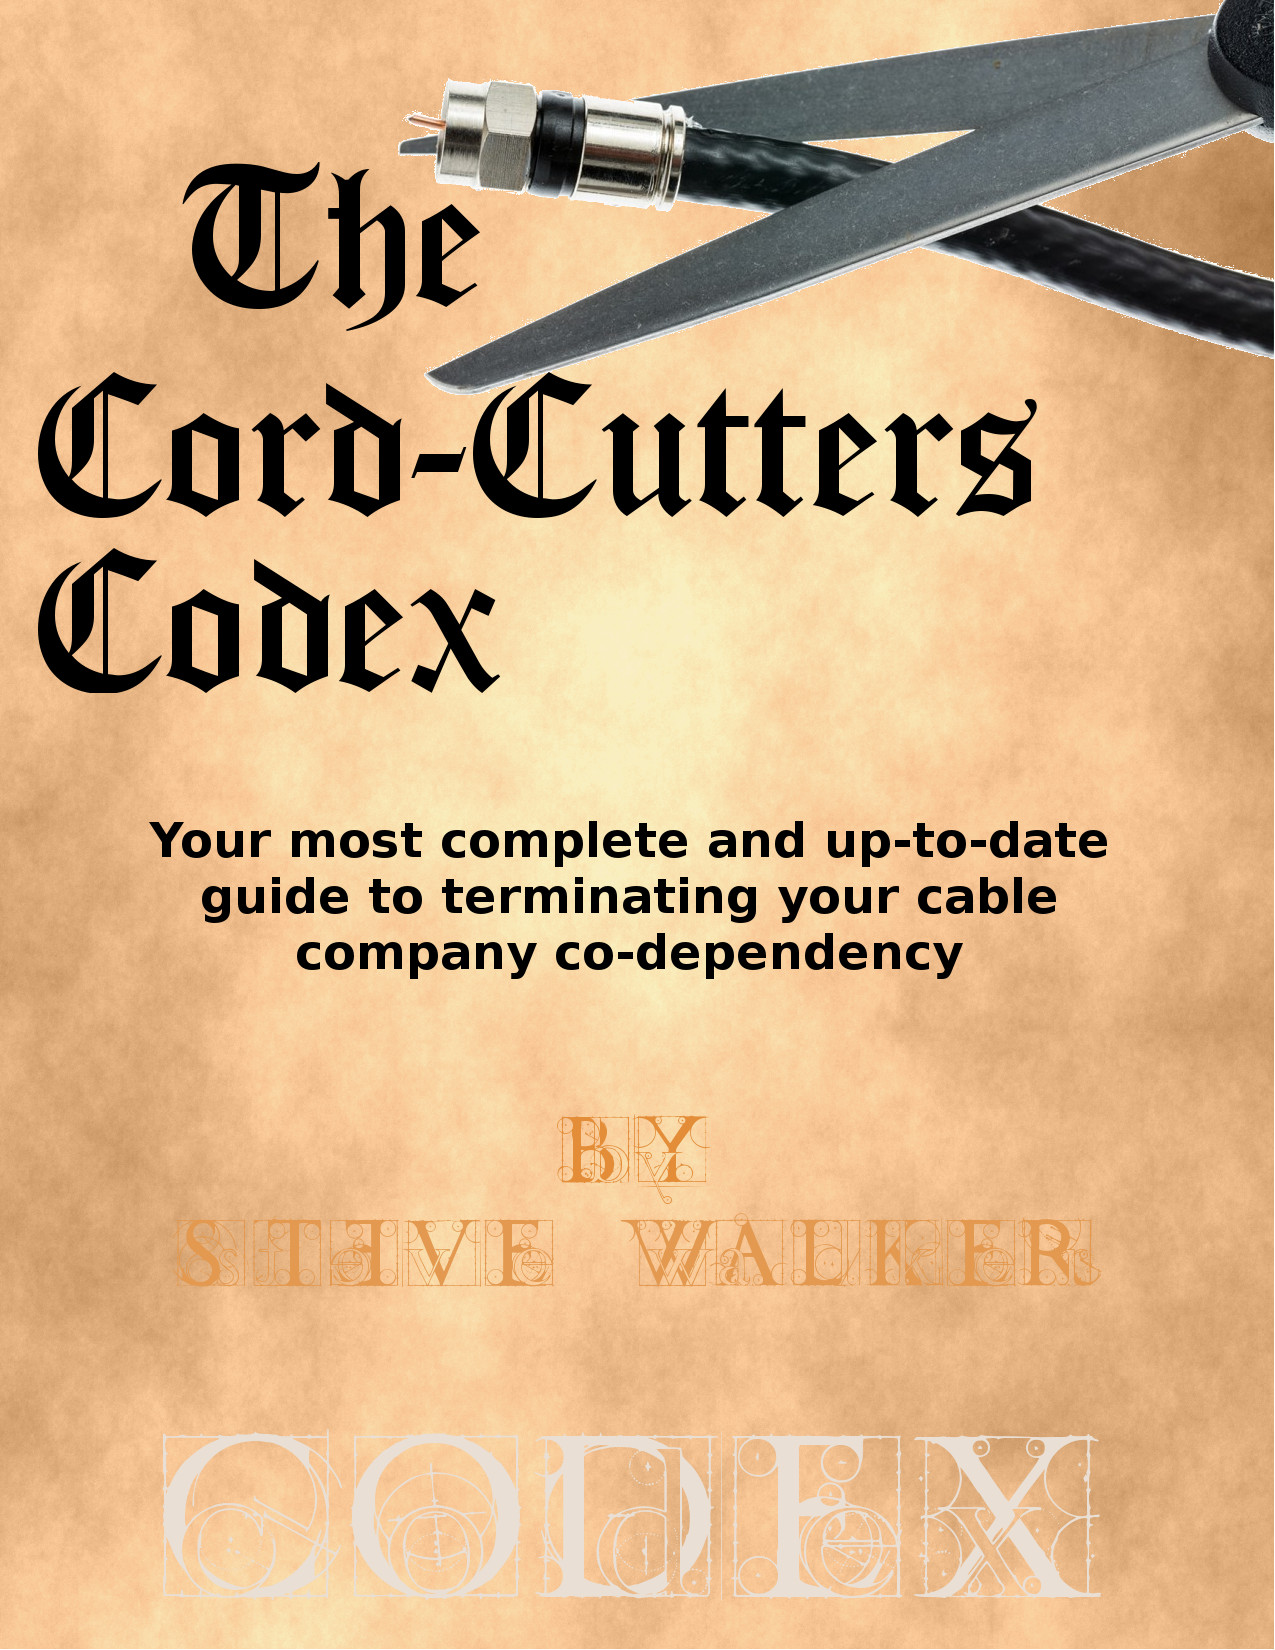 Cover of The Cord-Cutters Codex